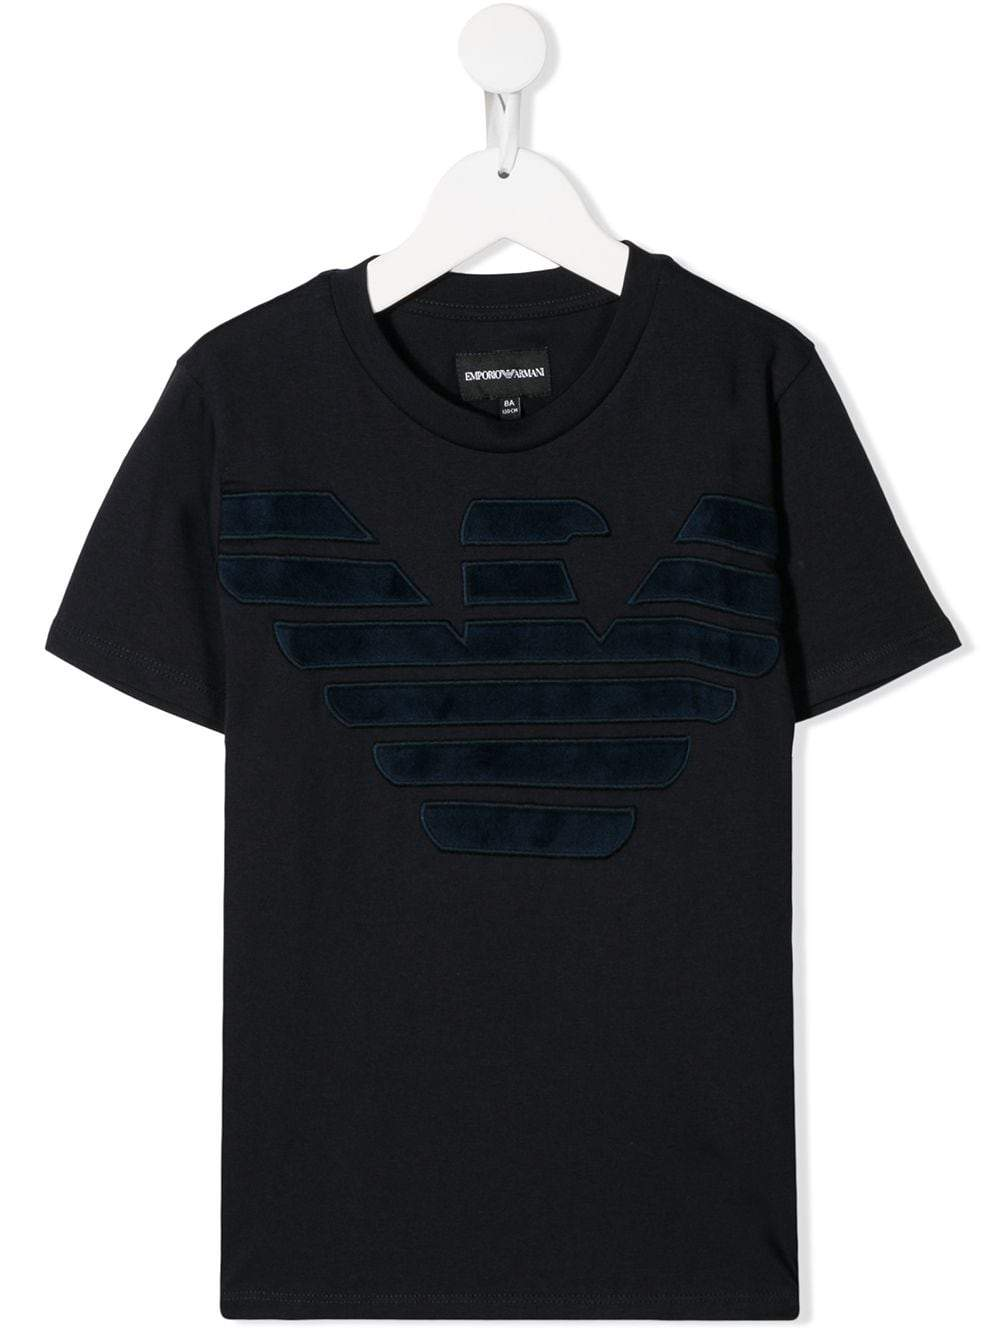 Emporio Armani Kids textured logo embroidered T-shirt - Maison De Fashion